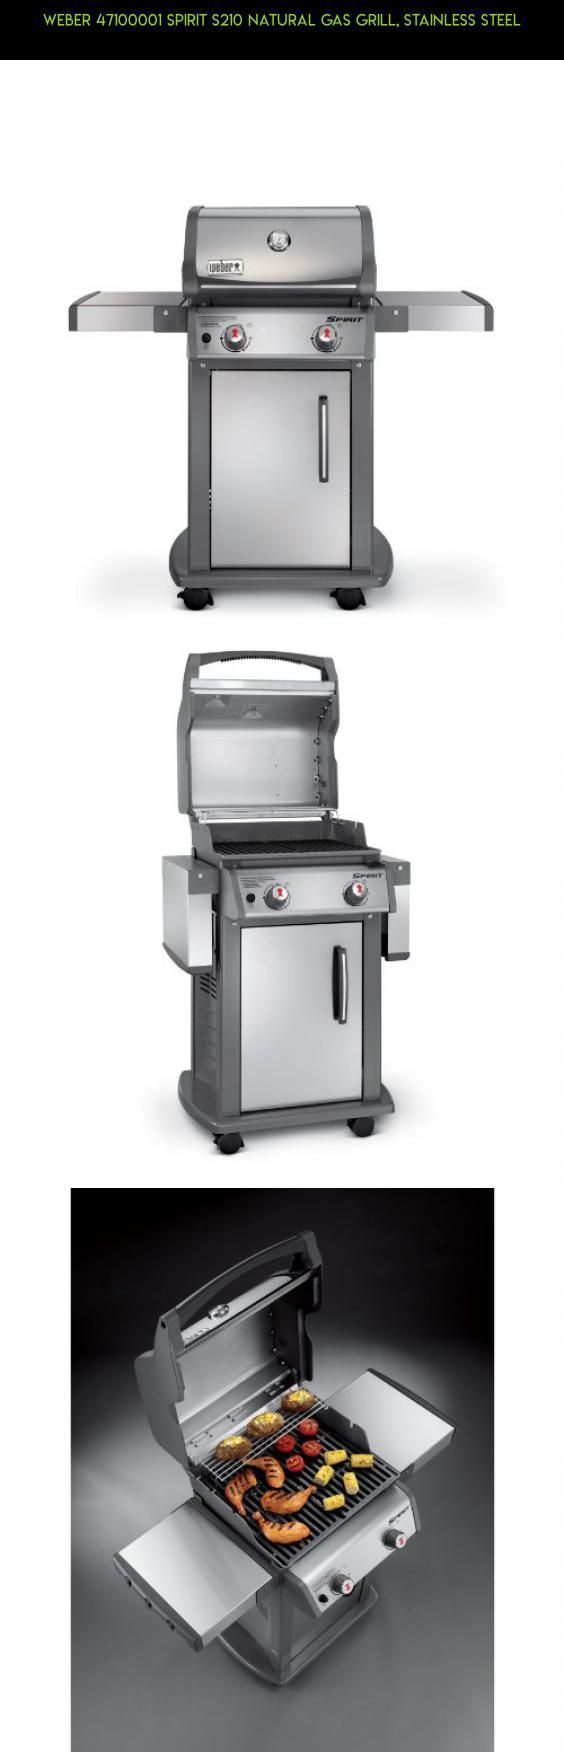 Weber 47100001 Spirit S210 Natural Gas Grill, Stainless Steel #gadgets #fpv #technology #grills #drone #racing #shopping #weber #parts #gas #camera #products #plans #tech #kit http://grilllover.org/coleman-road-trip-propane-portable-grill-lxe-review/